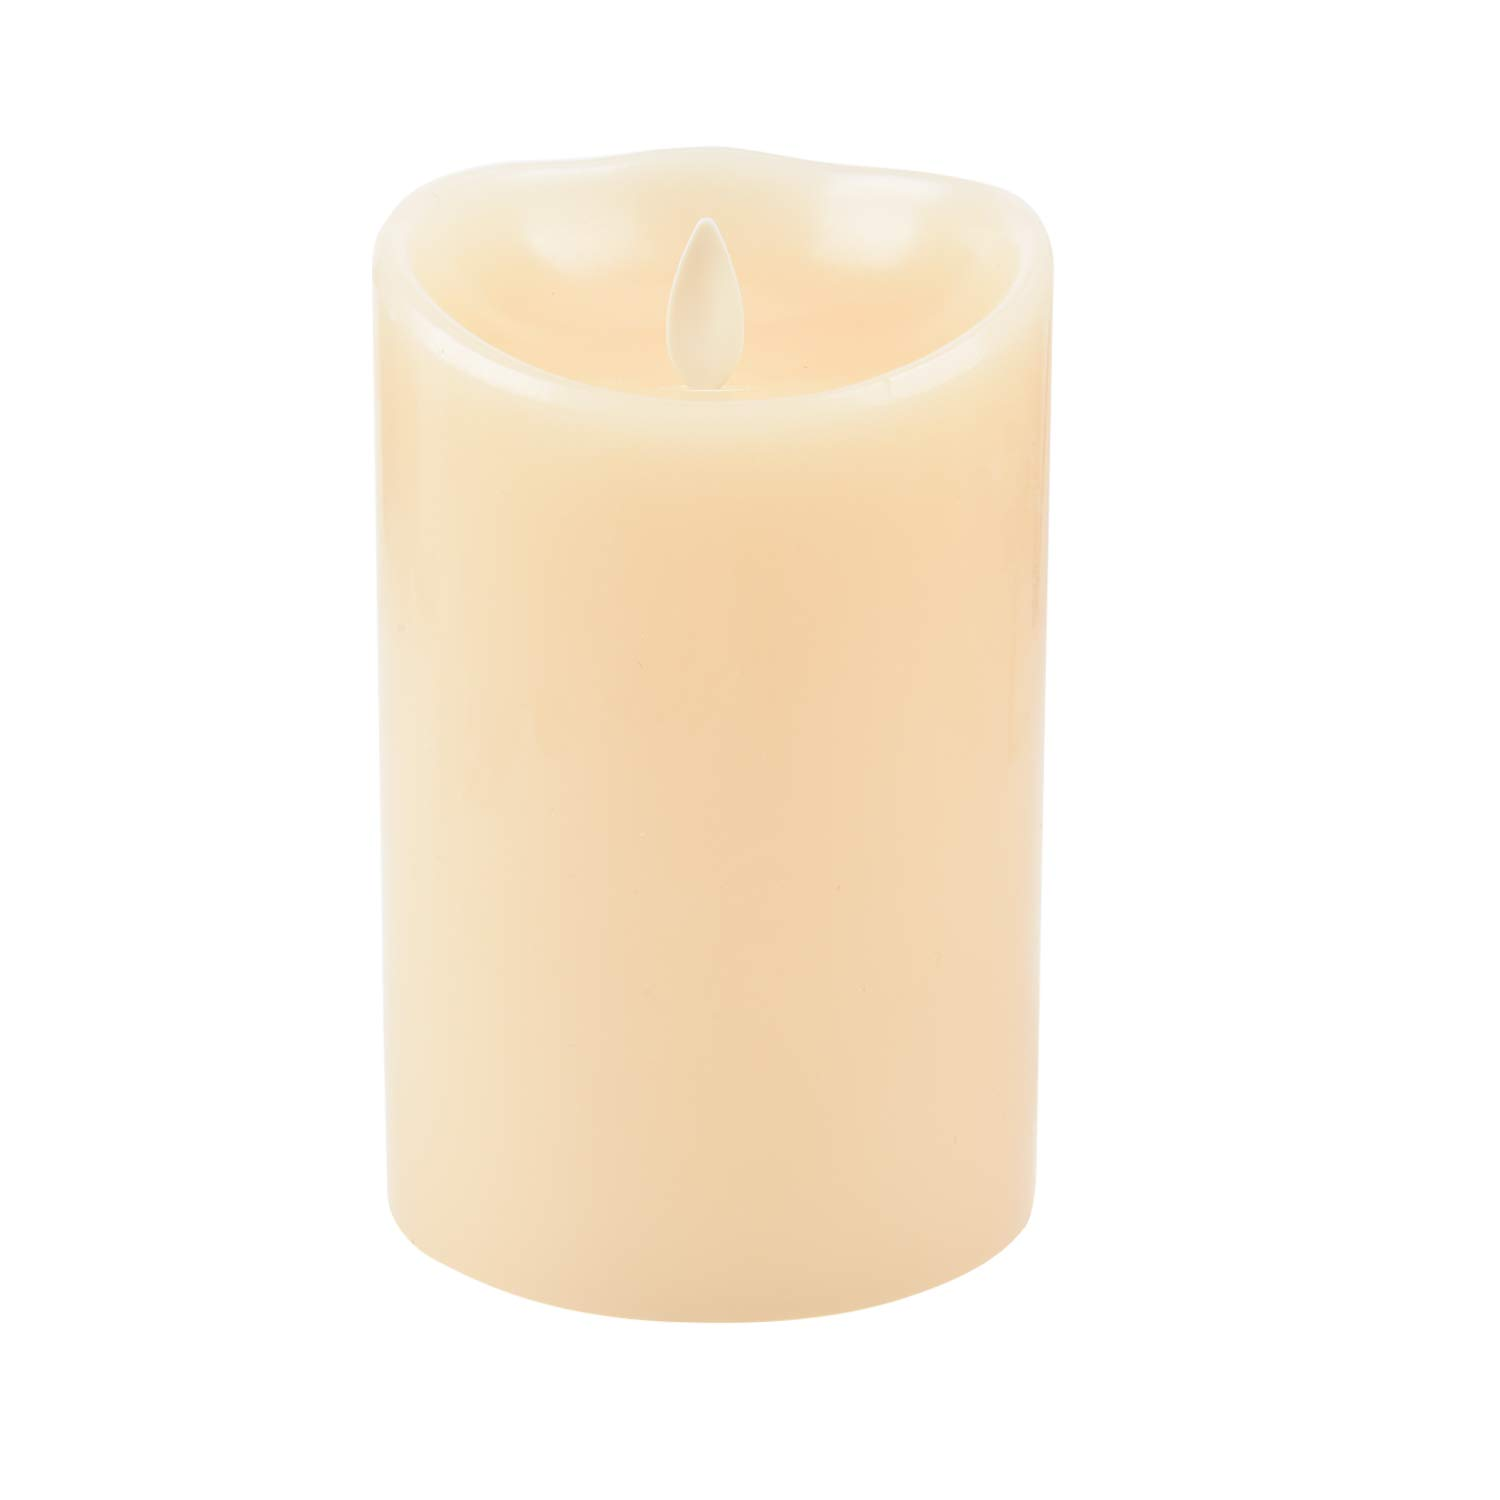 Luminara LED Flameless Candles, Luminara Flameless Real Wax Moving Wick LED Candle for Home/Party/Halloween/Christmas/Wedding Decor with Timer Control Vanilla Scent 3.5'' x 5'' - Ivory by iDOO